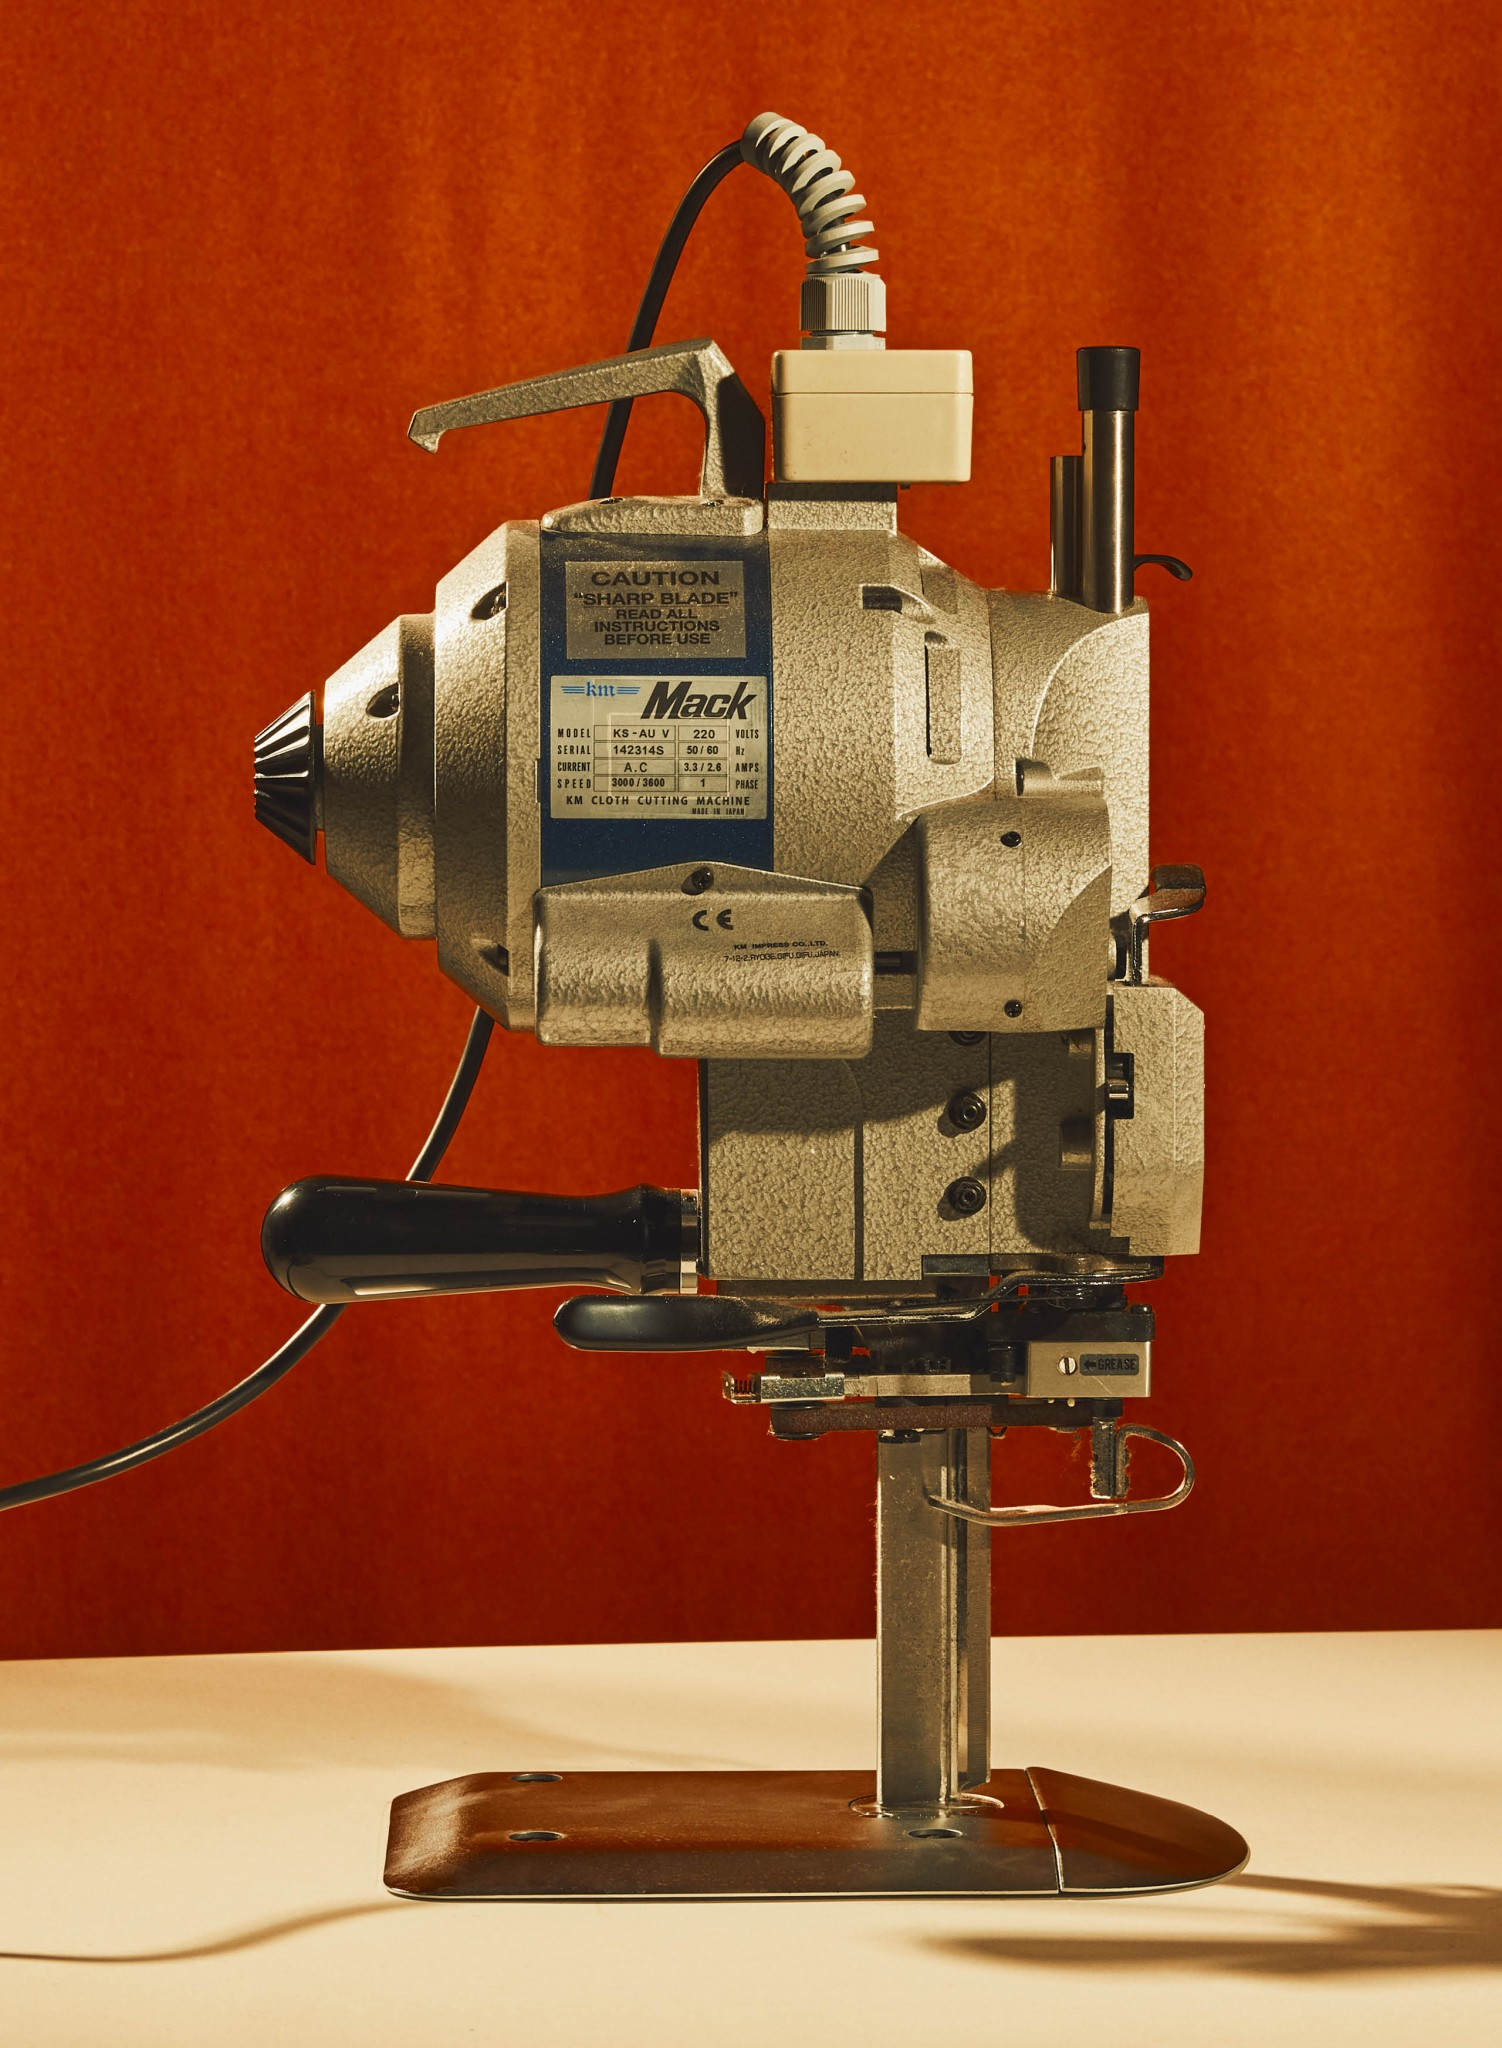 Image of a fabric cutting machine